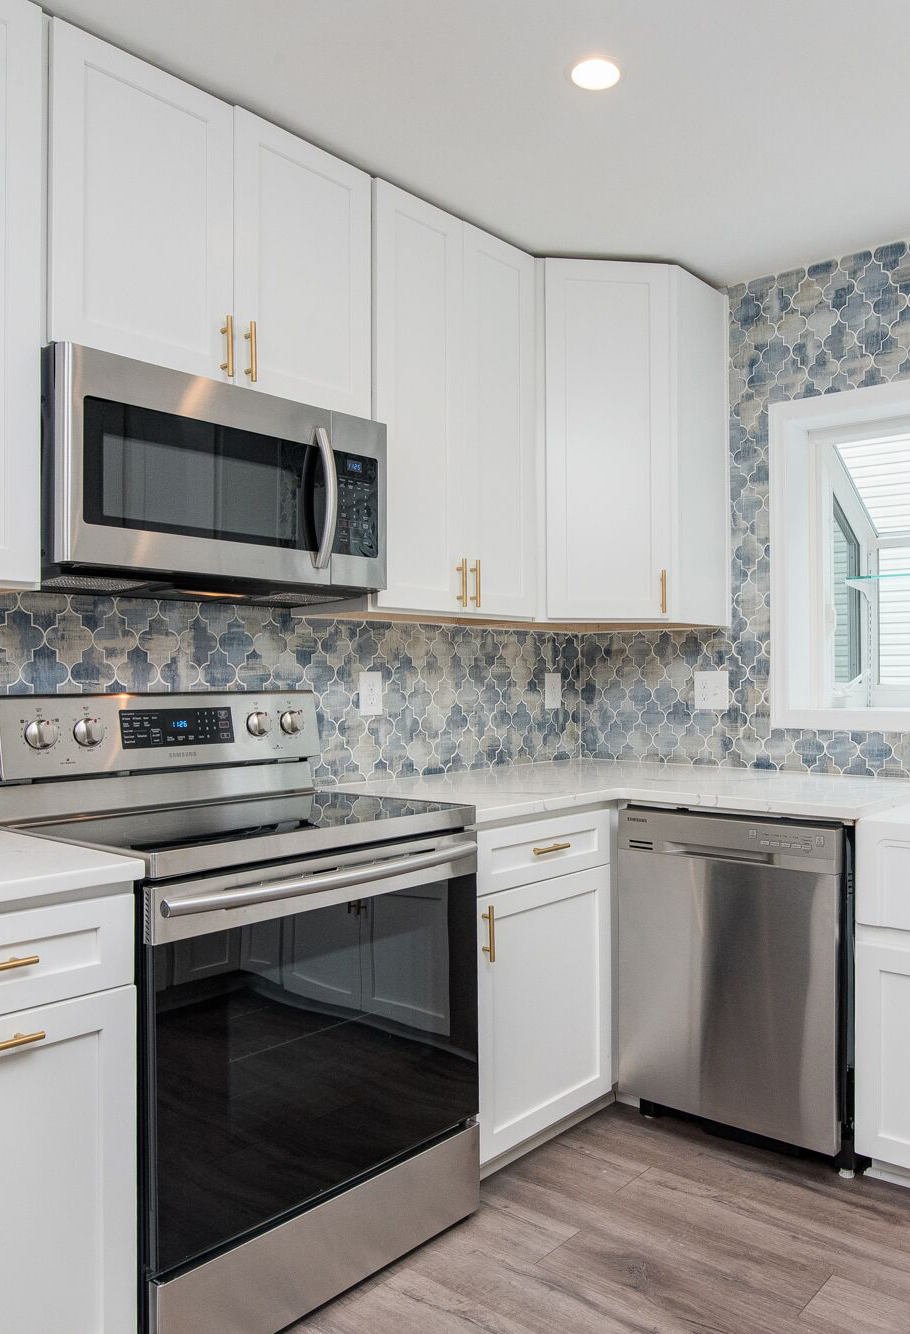 White Cabinets With Colorful Backsplash Online Kitchen Cabinets Backsplash Kitchen White Cabinets Wholesale Kitchen Cabinets